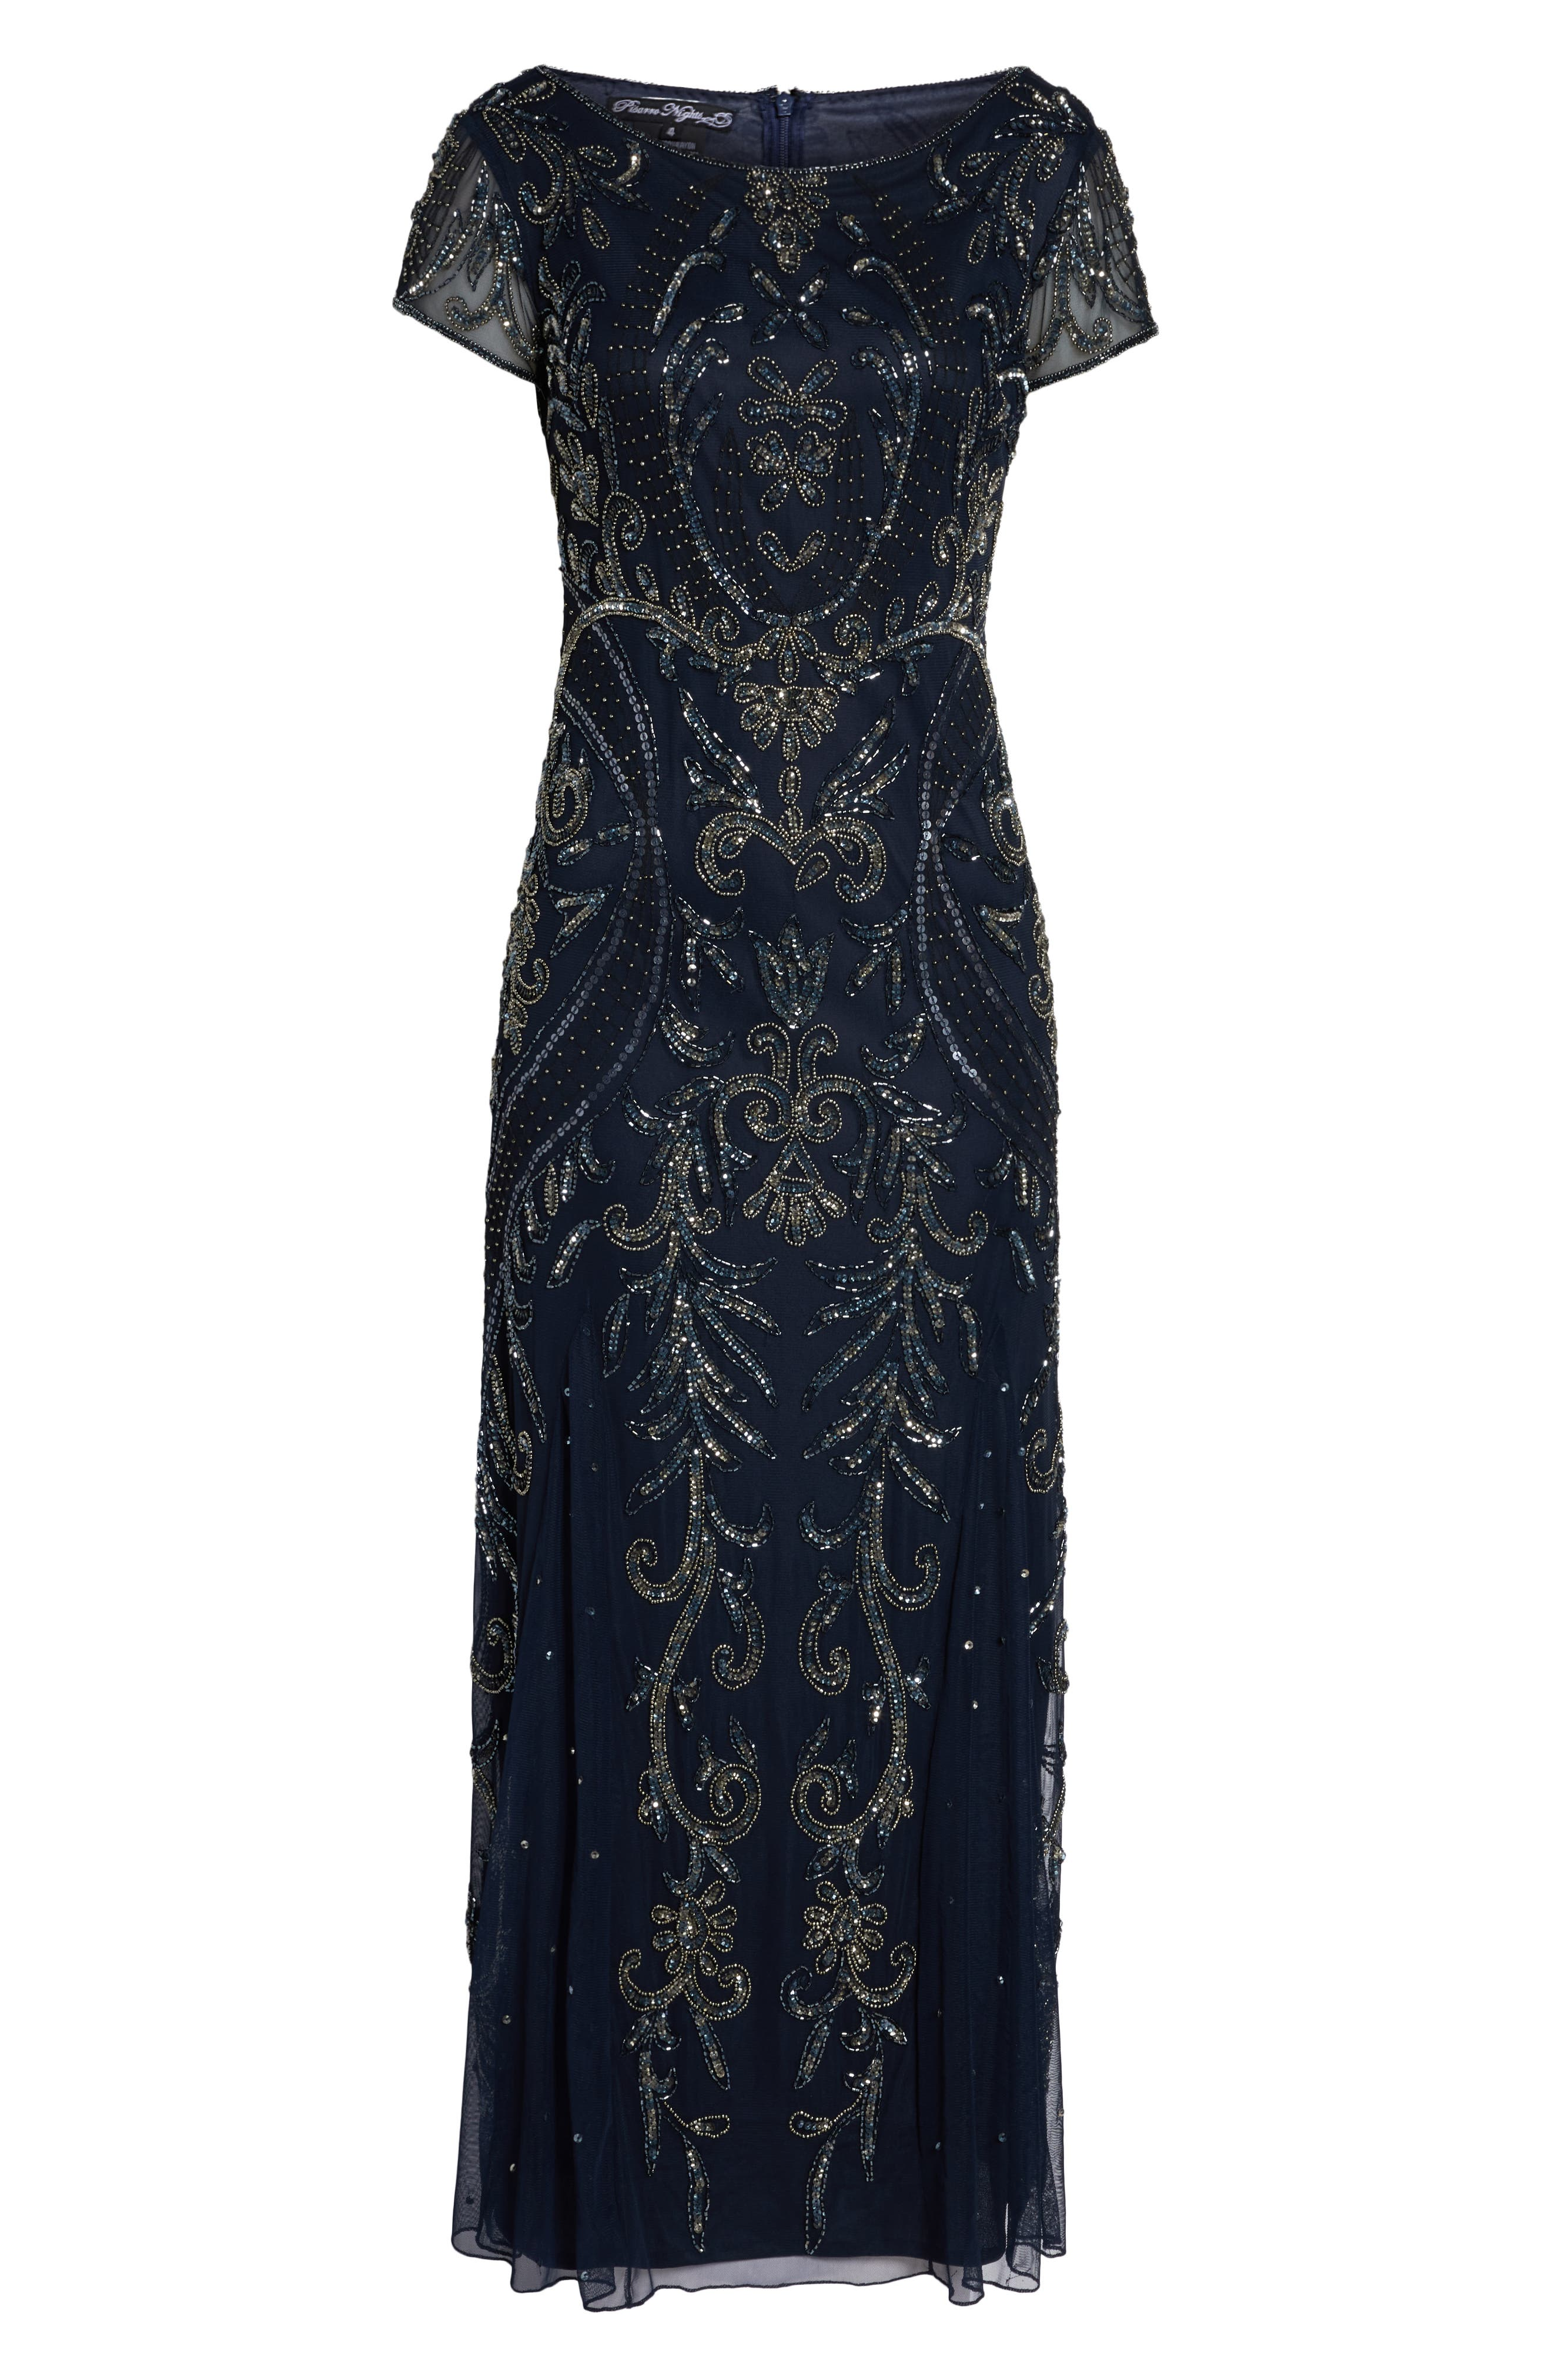 PISARRO NIGHTS, Embellished Mesh Gown, Alternate thumbnail 7, color, NAVY